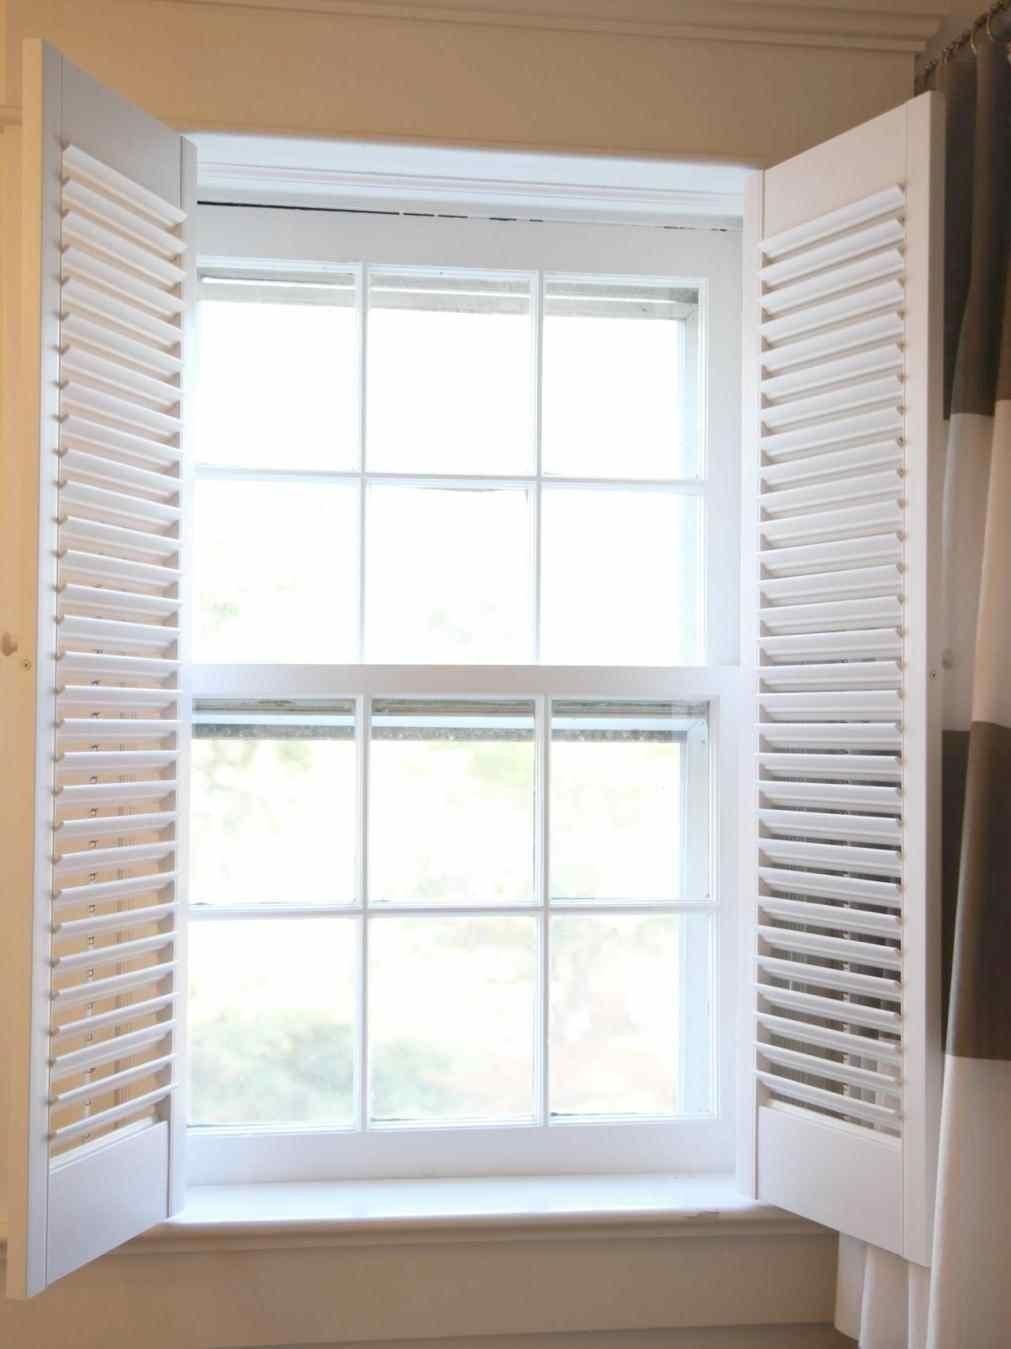 Sliding Plantation Shutters Patio Door Master